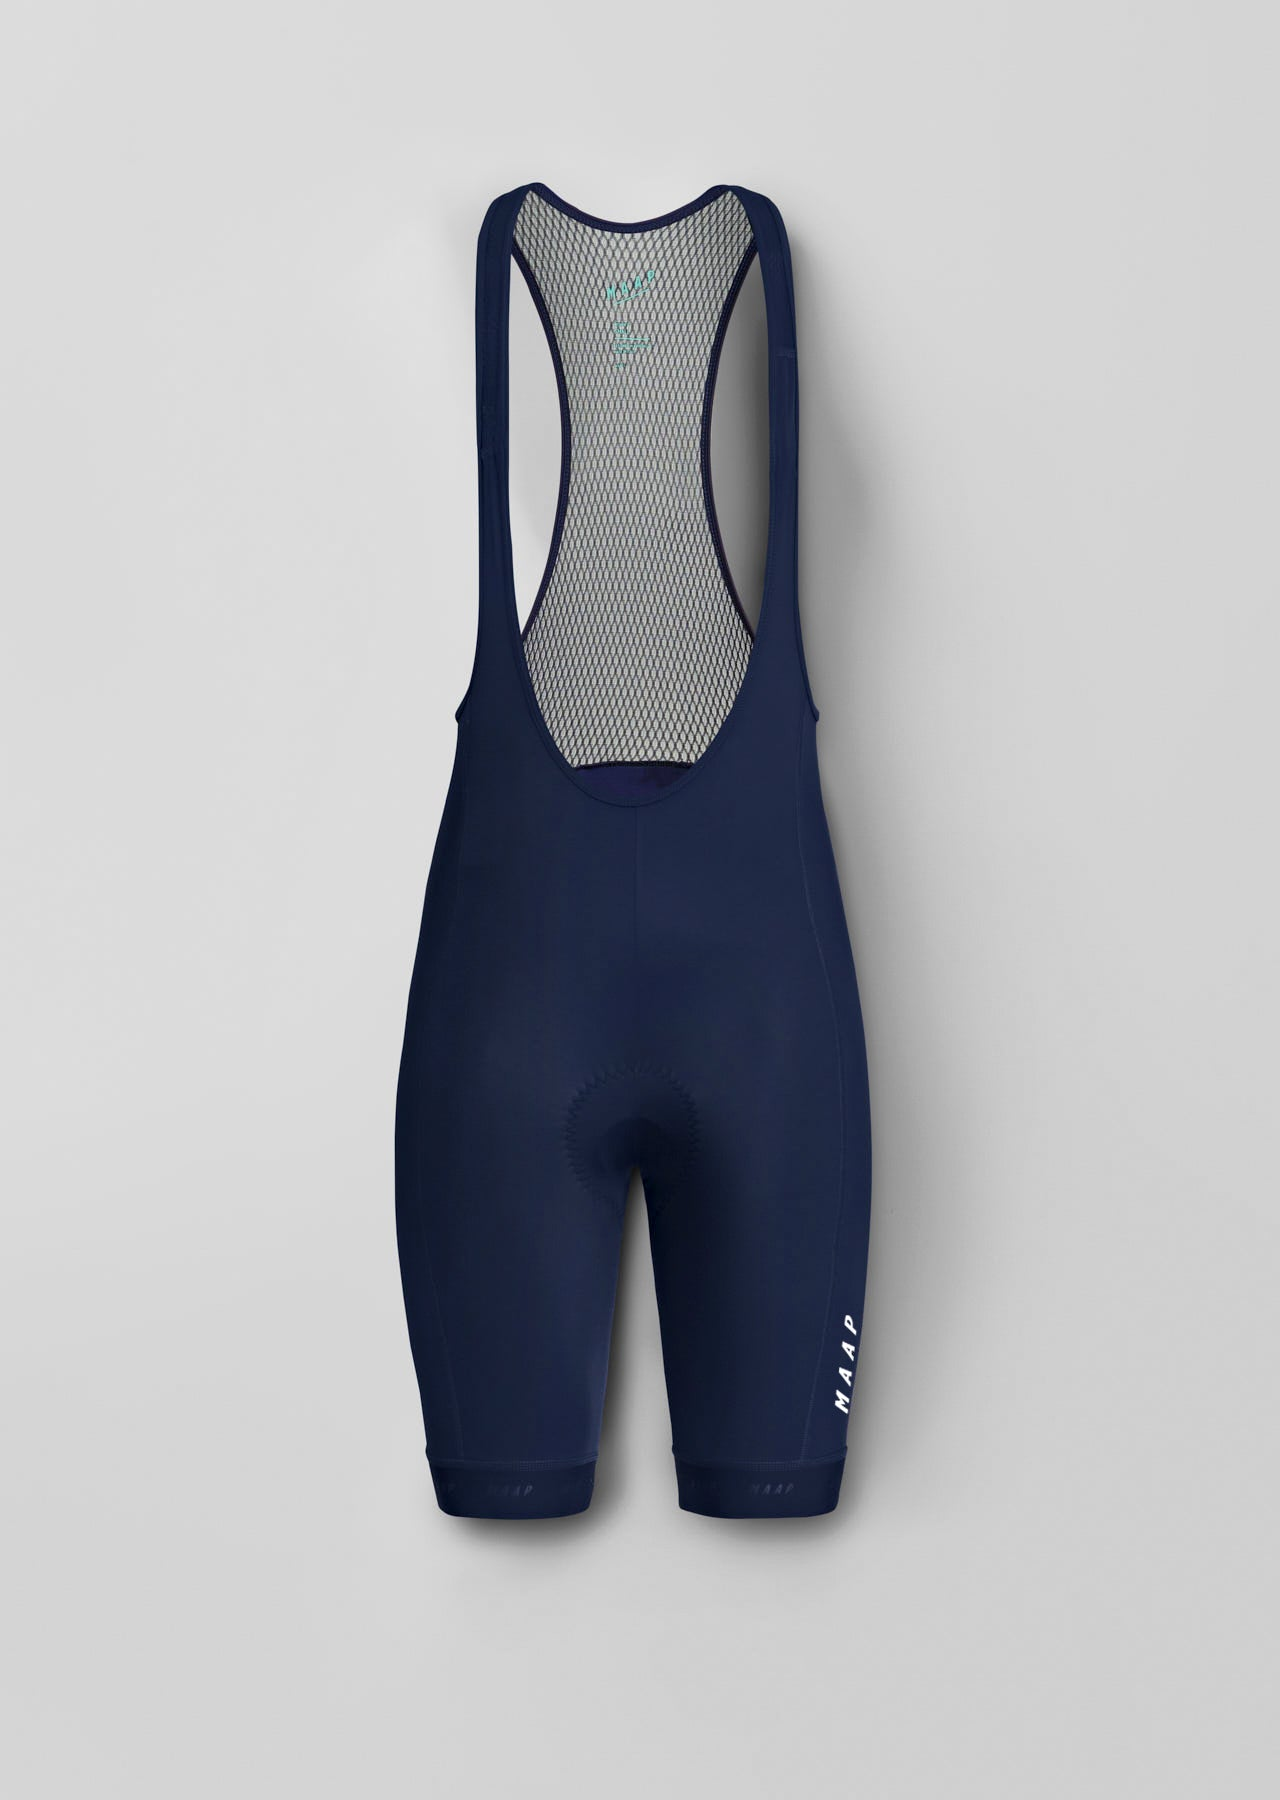 Women's Training Bib Short